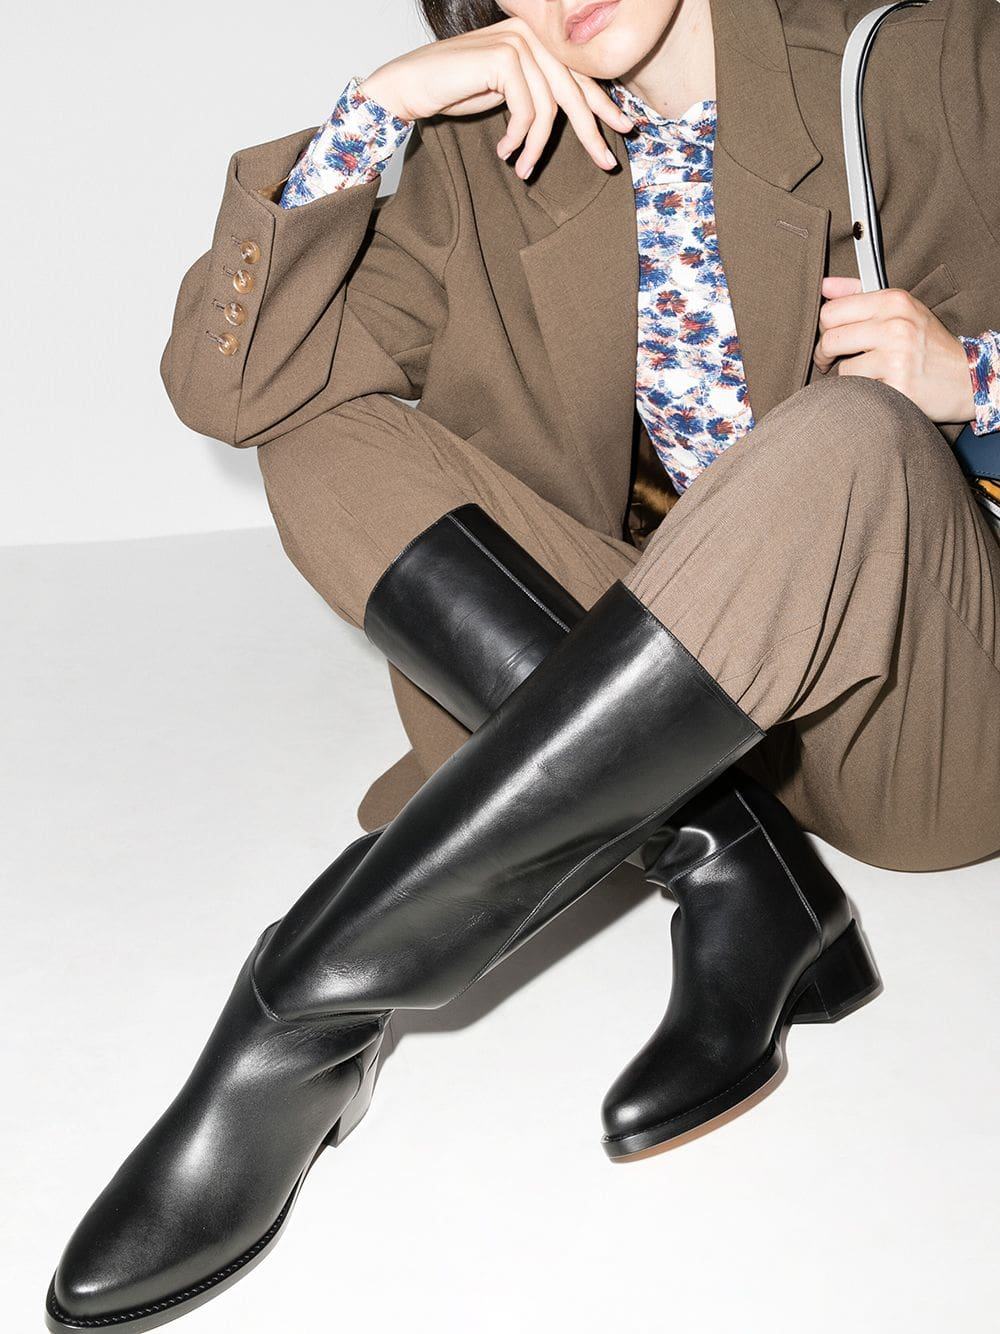 Channel your inner royal with the Legres classic minimalist riding boots